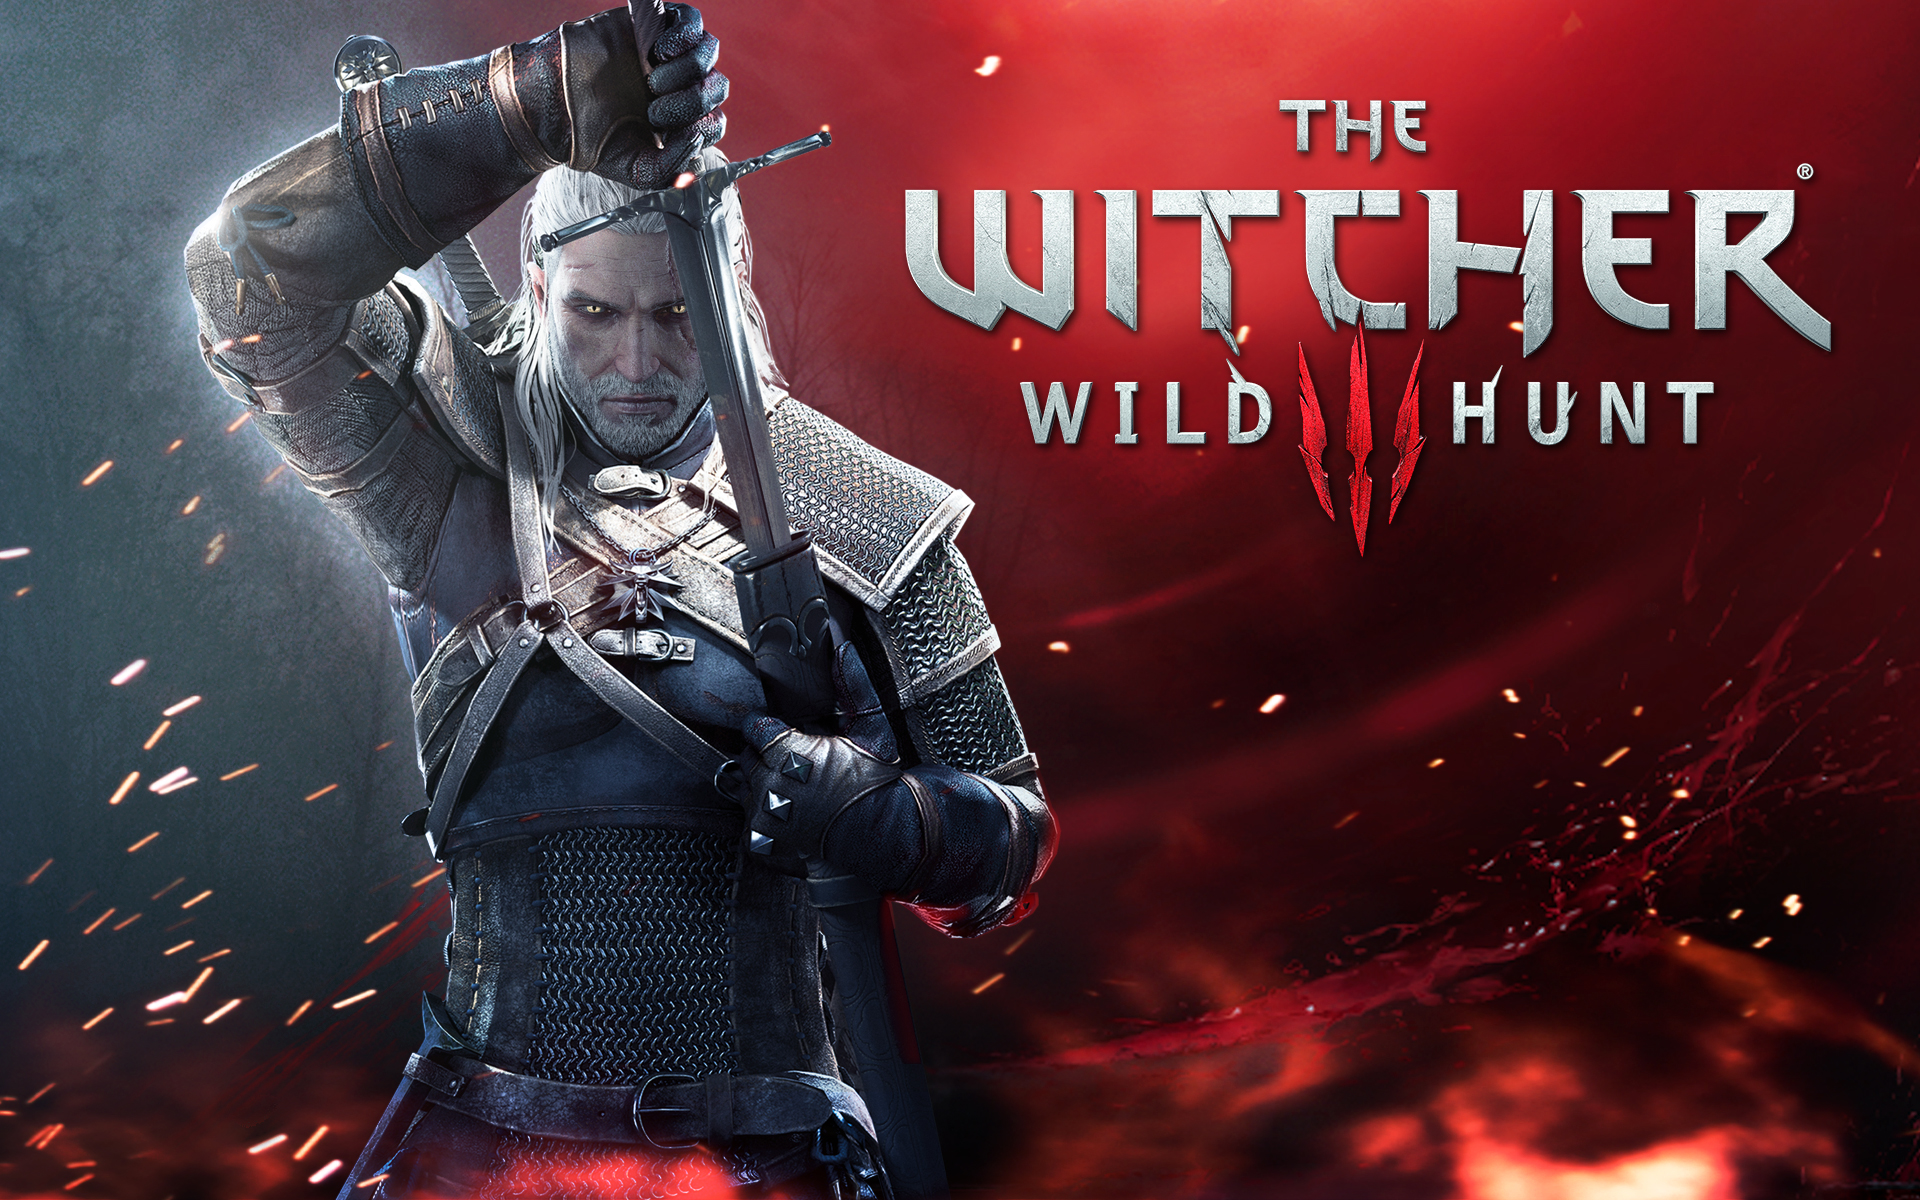 The Witcher 3 Wild Hunt The Witcher Geralt Of Rivia 1920x1200